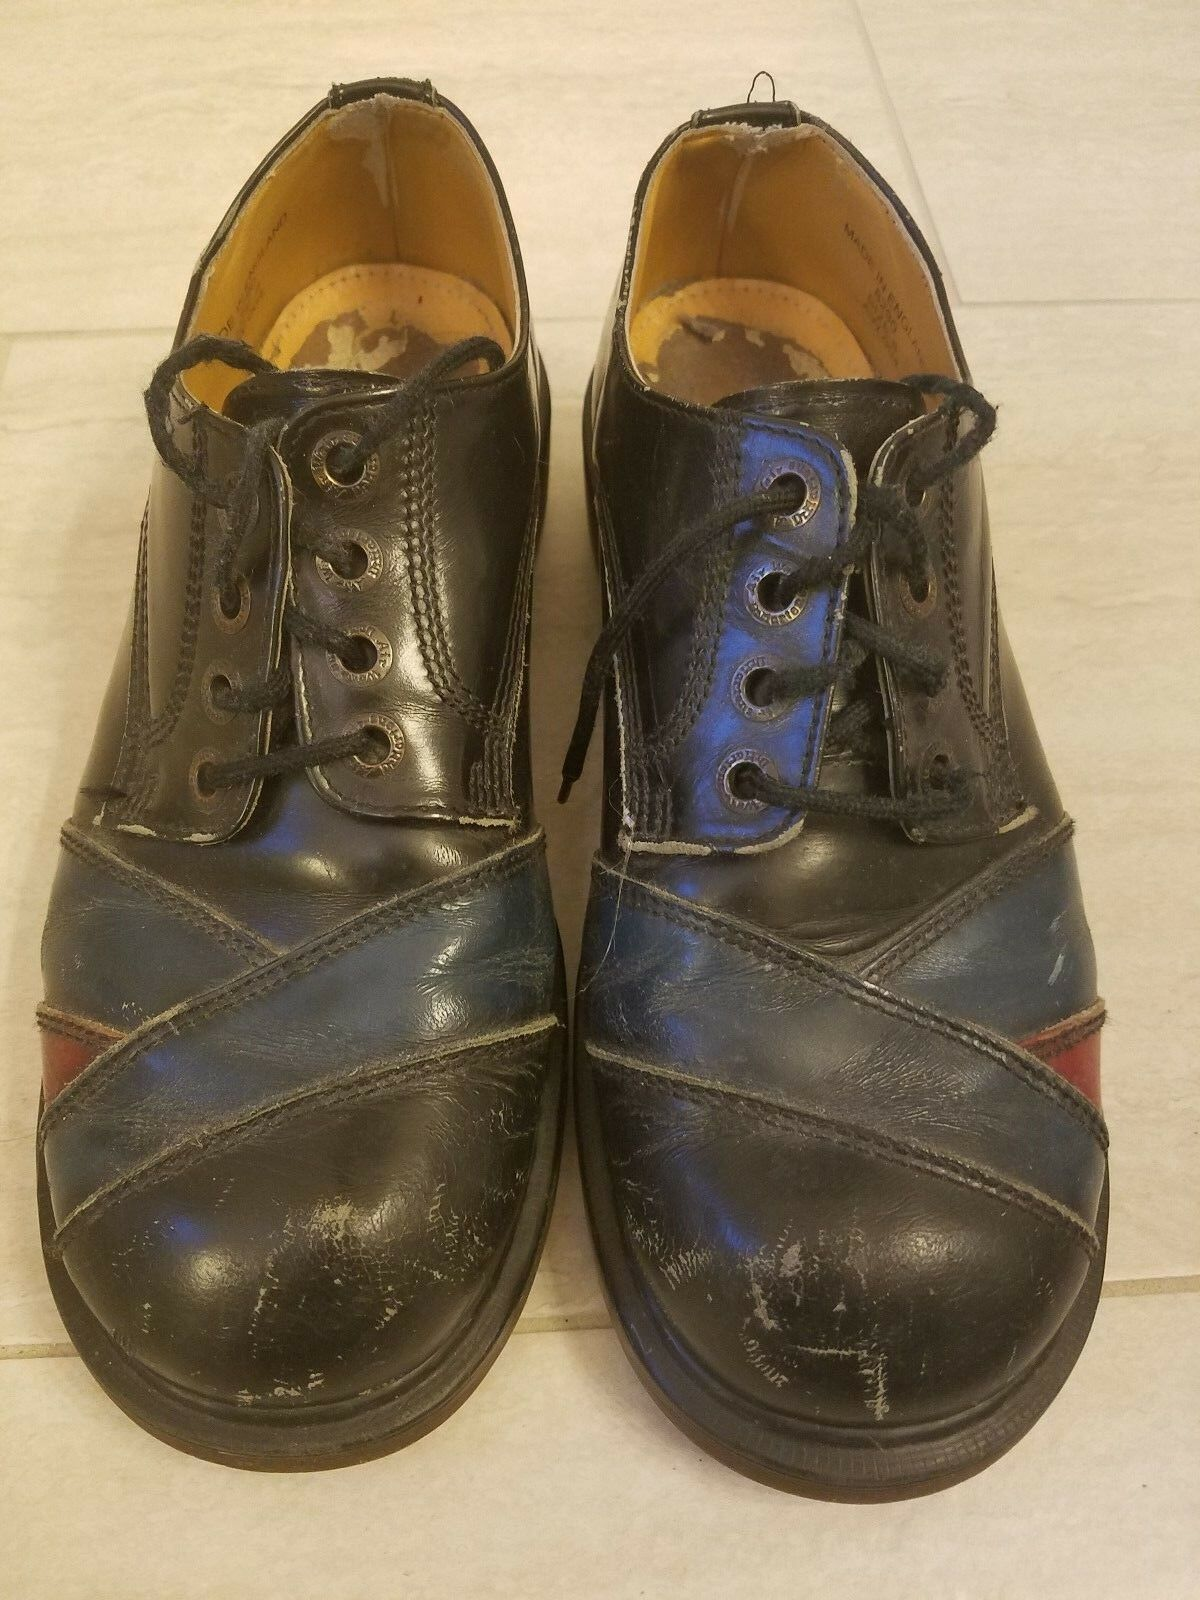 Rare Vintage Doc Dr. Martens shoes Black bluee & Red 80s Size 8 Creepers England